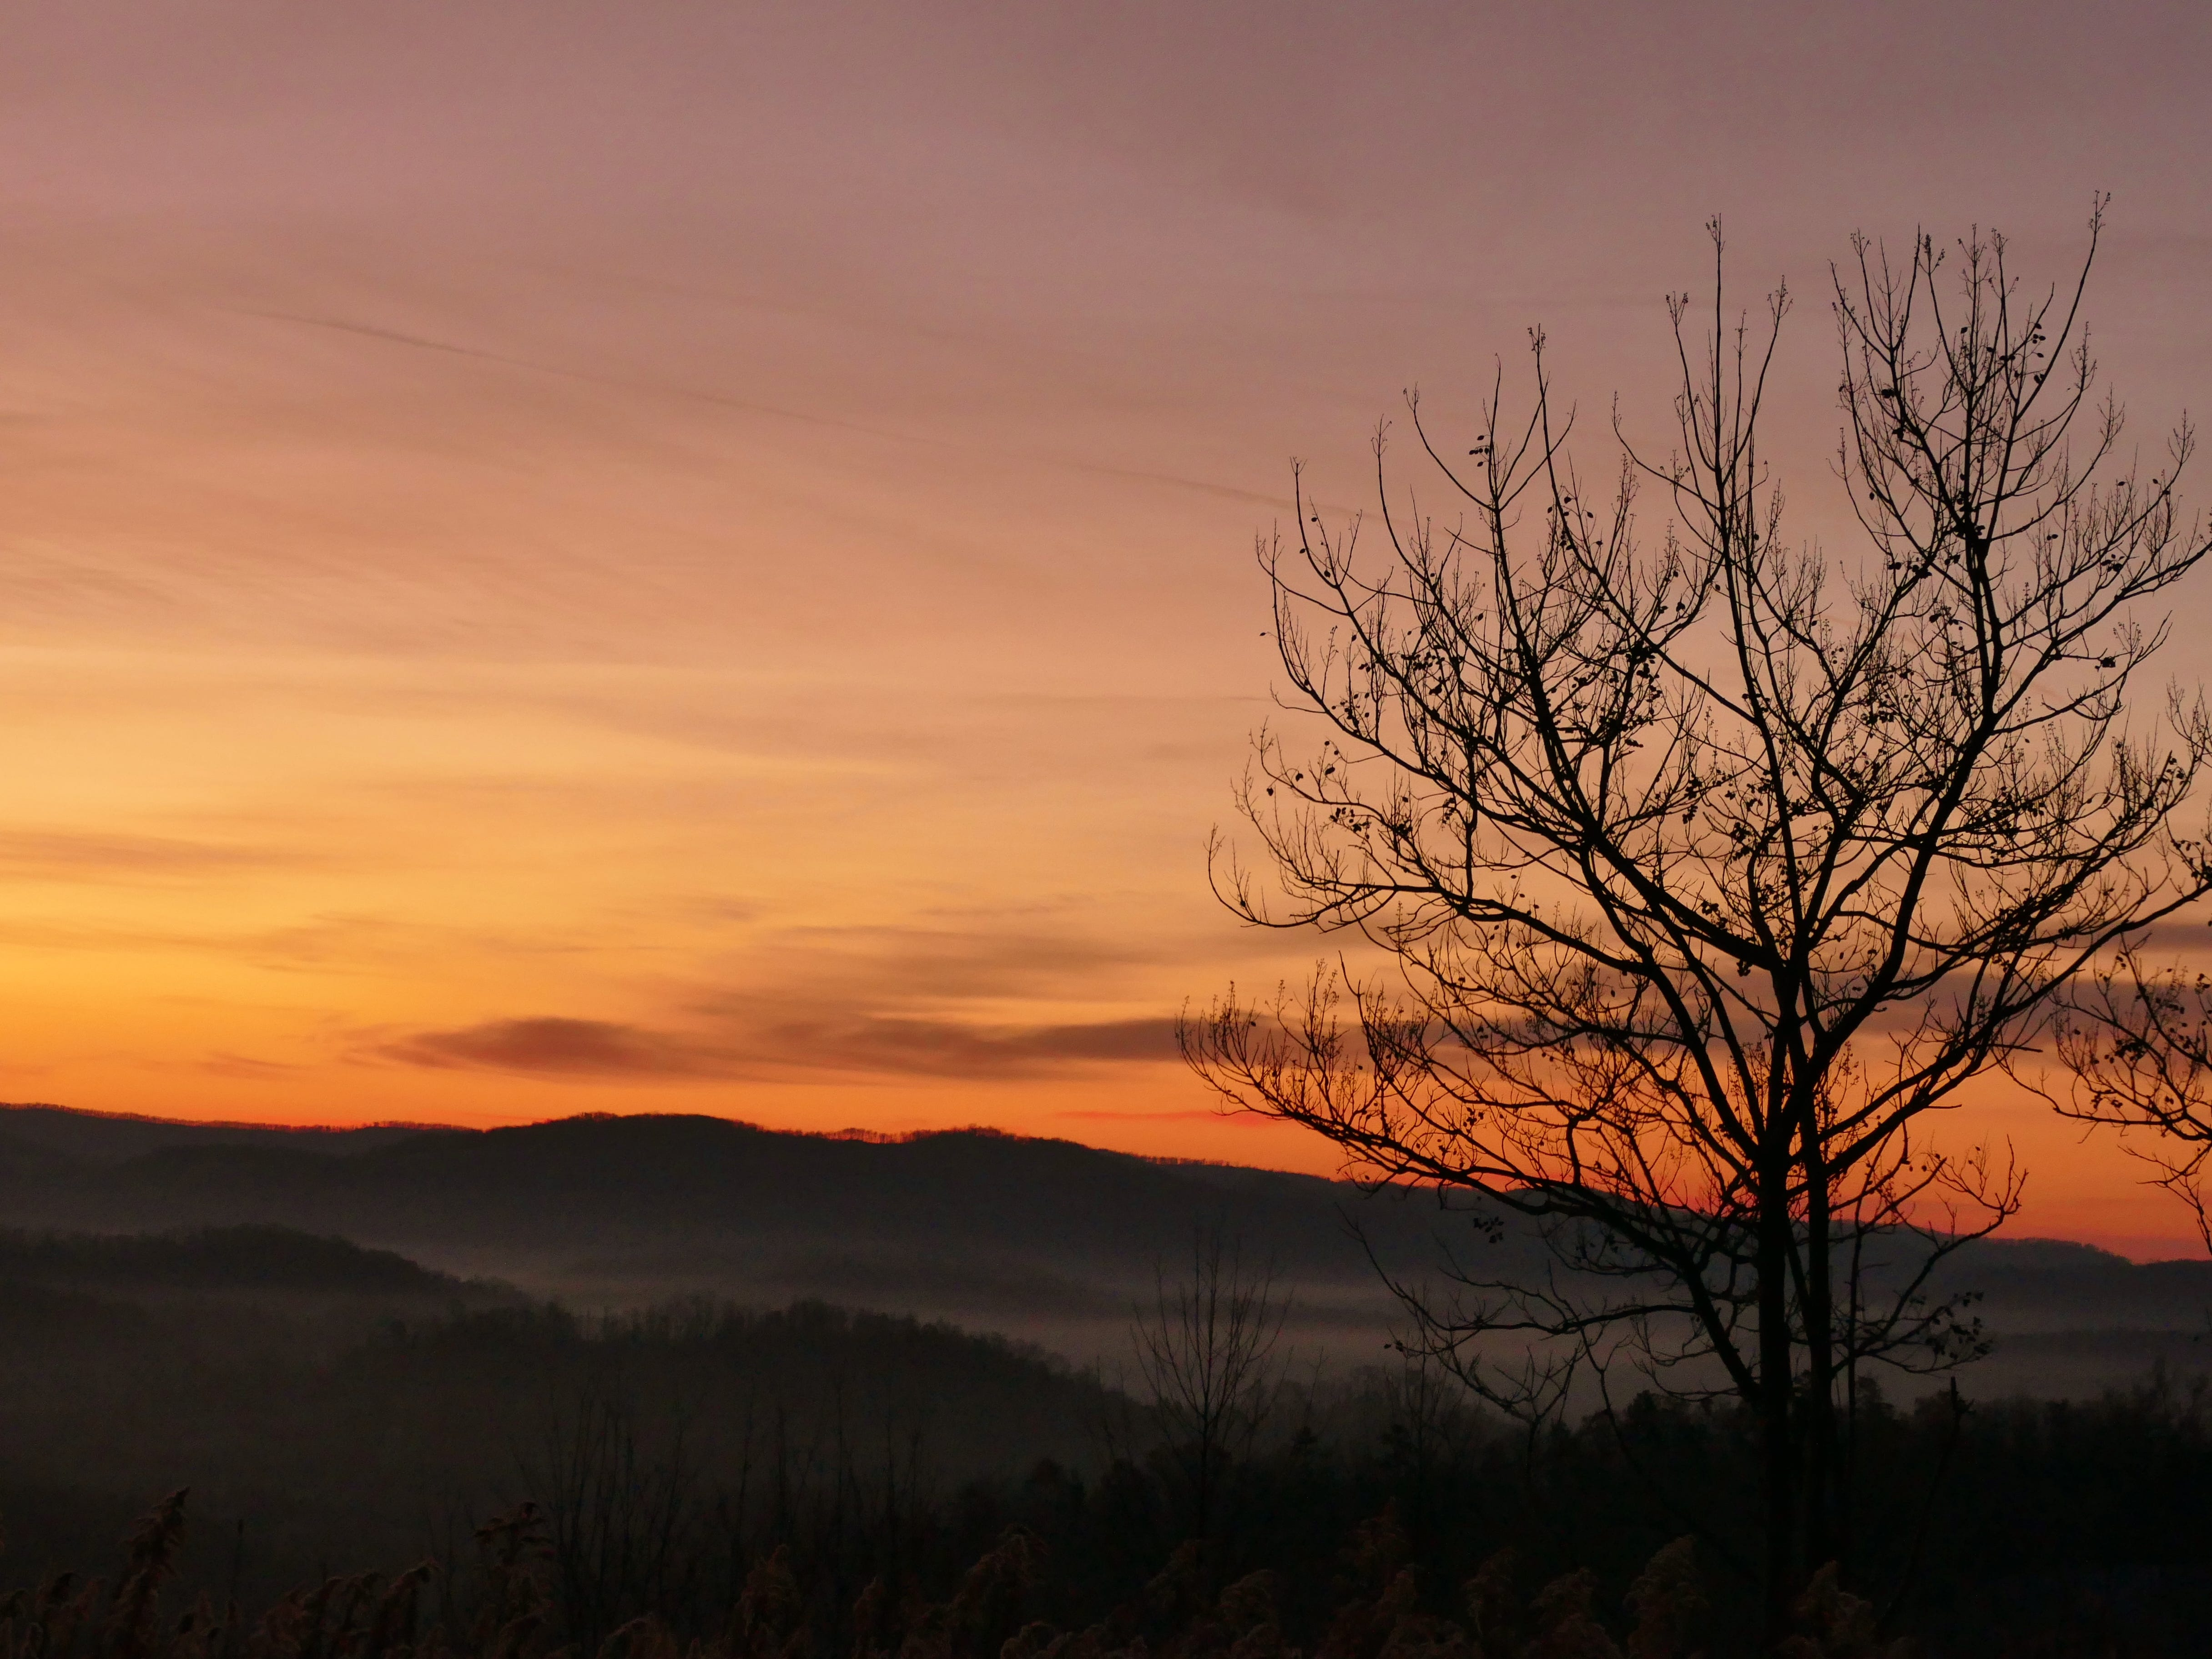 Monte Seymour photographed this sunrise near Jellico, Tenn. on the way to hike Vanhook Falls in Kentucky.